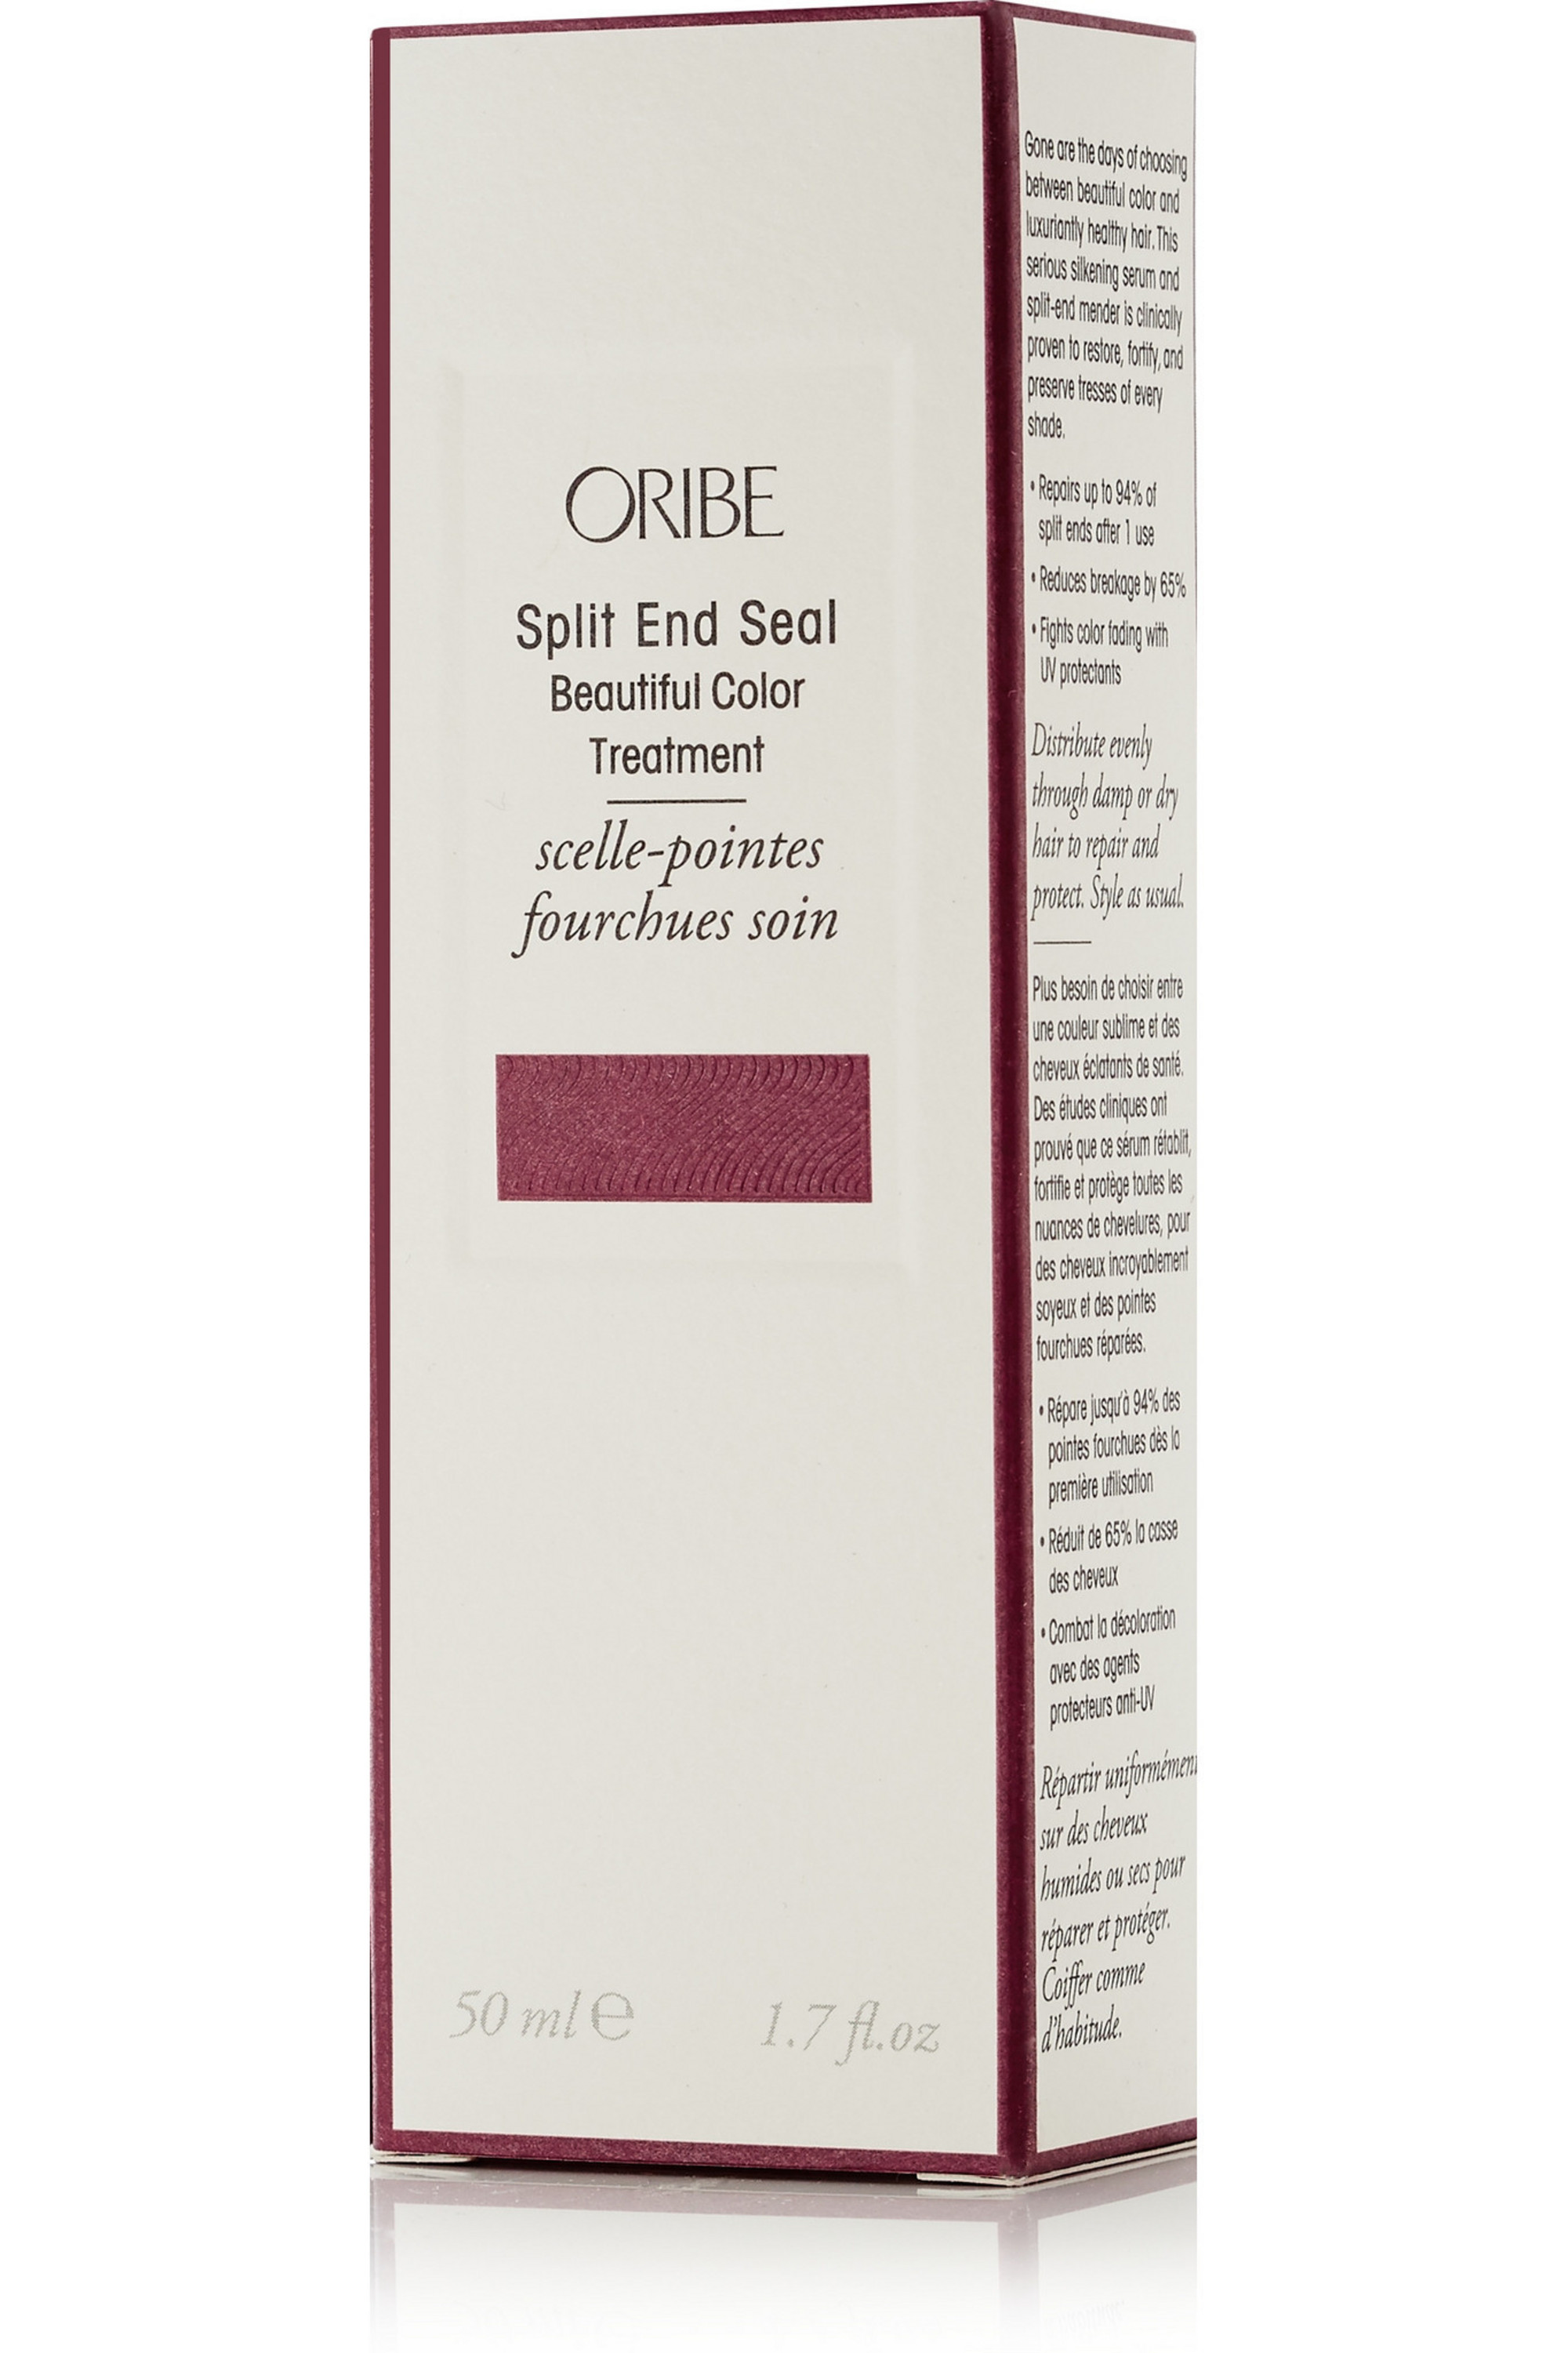 ORIBE Split End Seal, 50ml